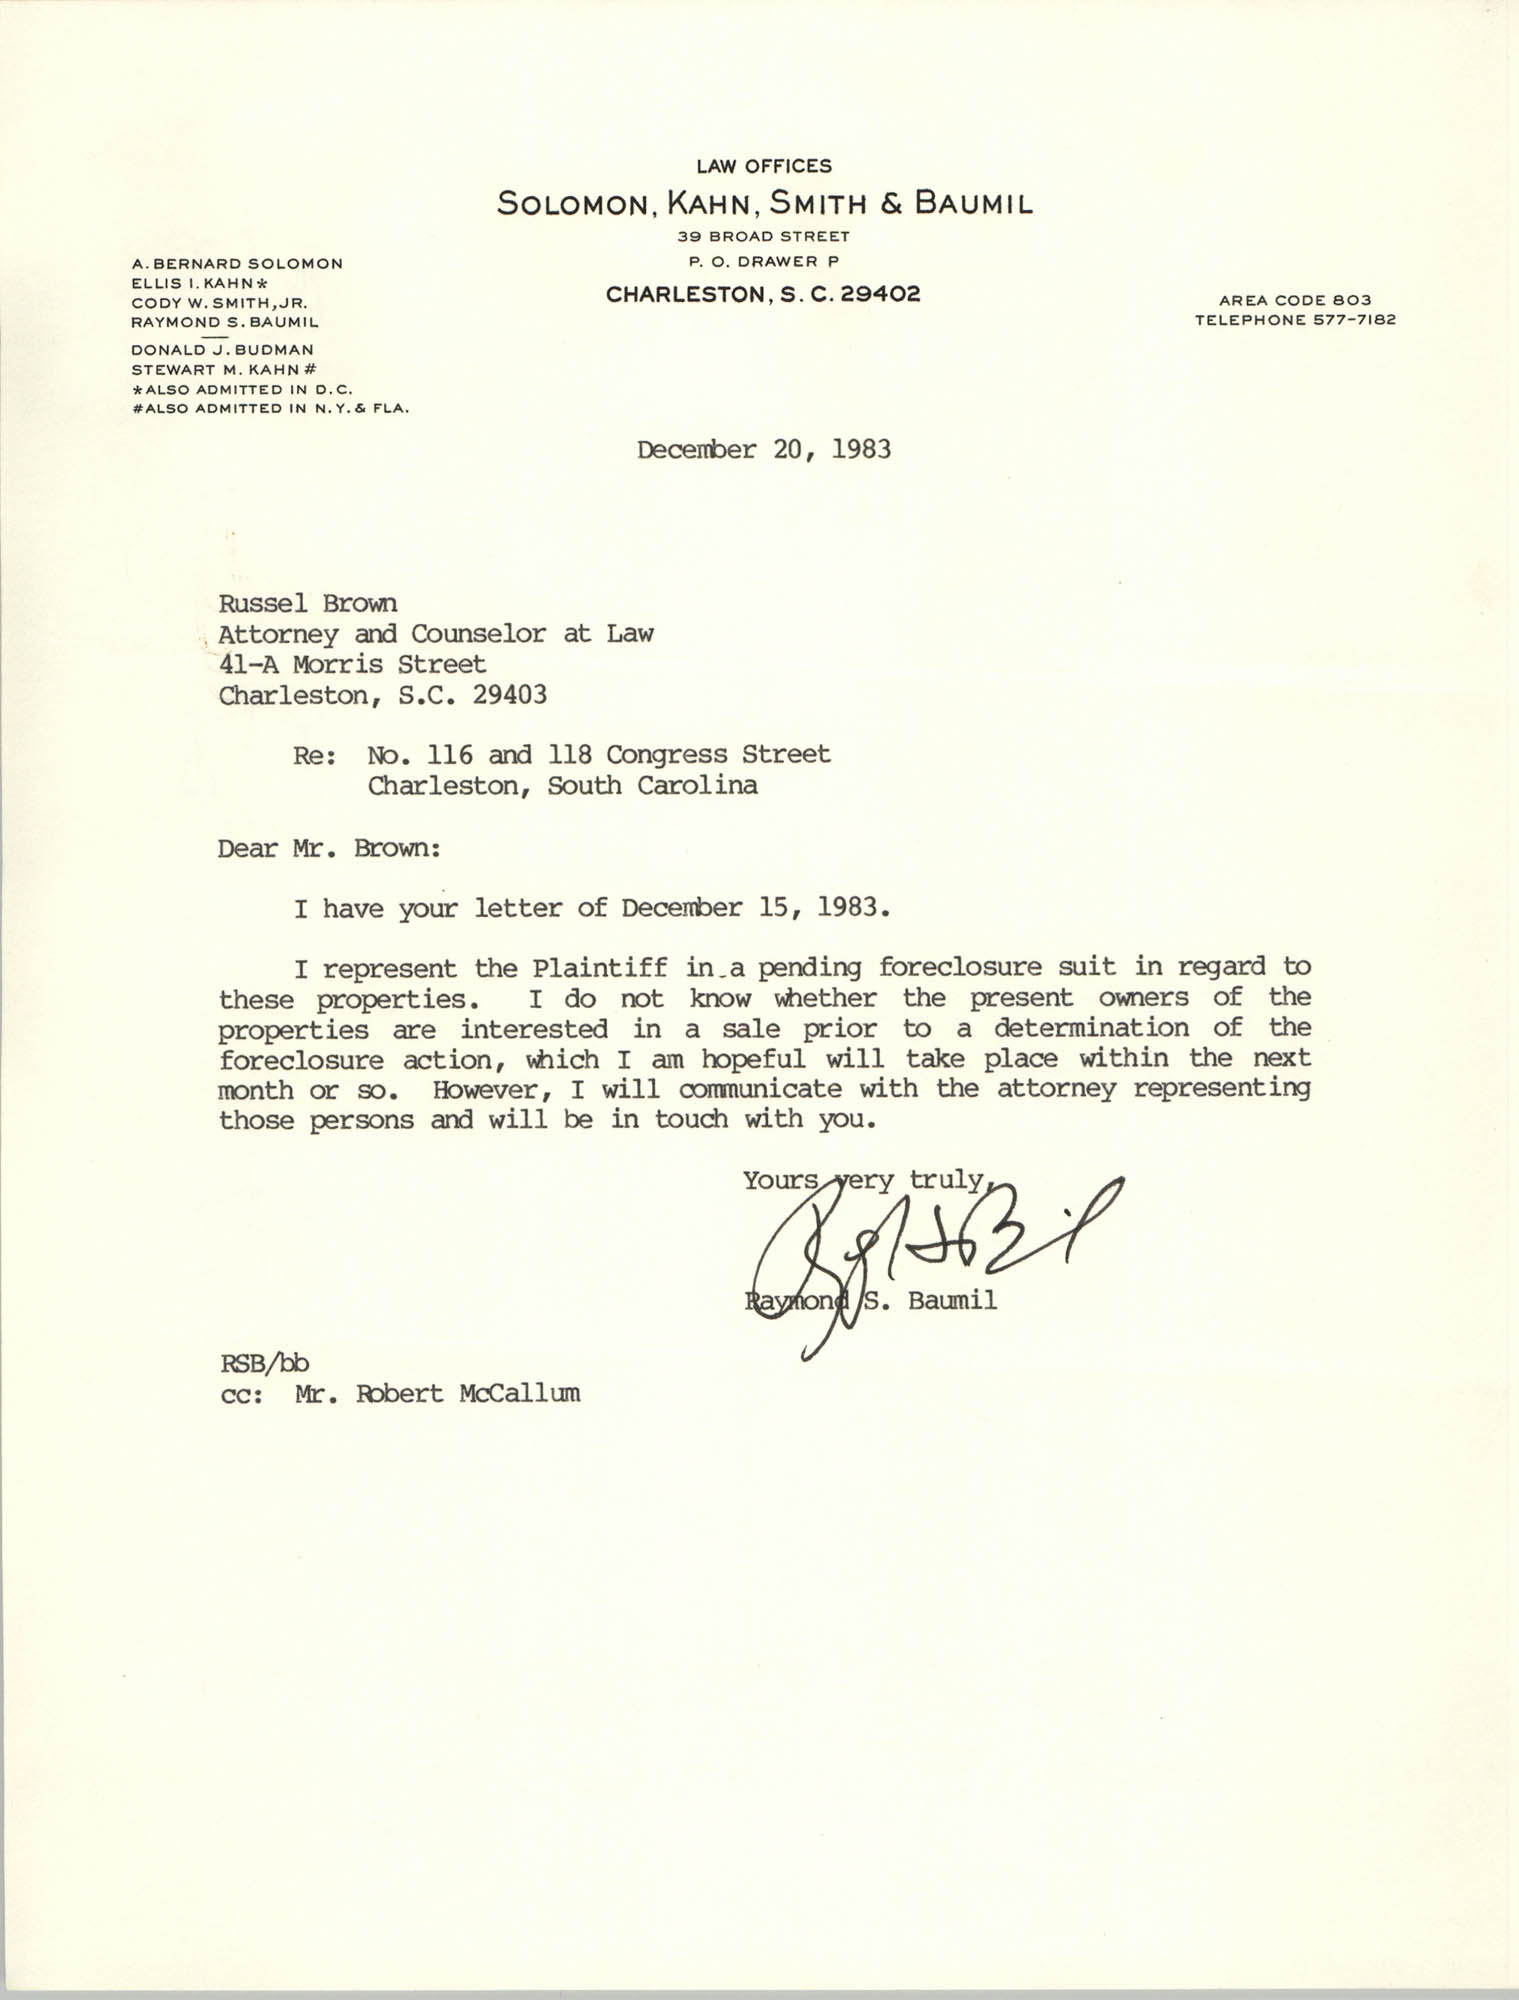 Letter from Raymond S. Baumil to Russell Brown, December 20, 1983